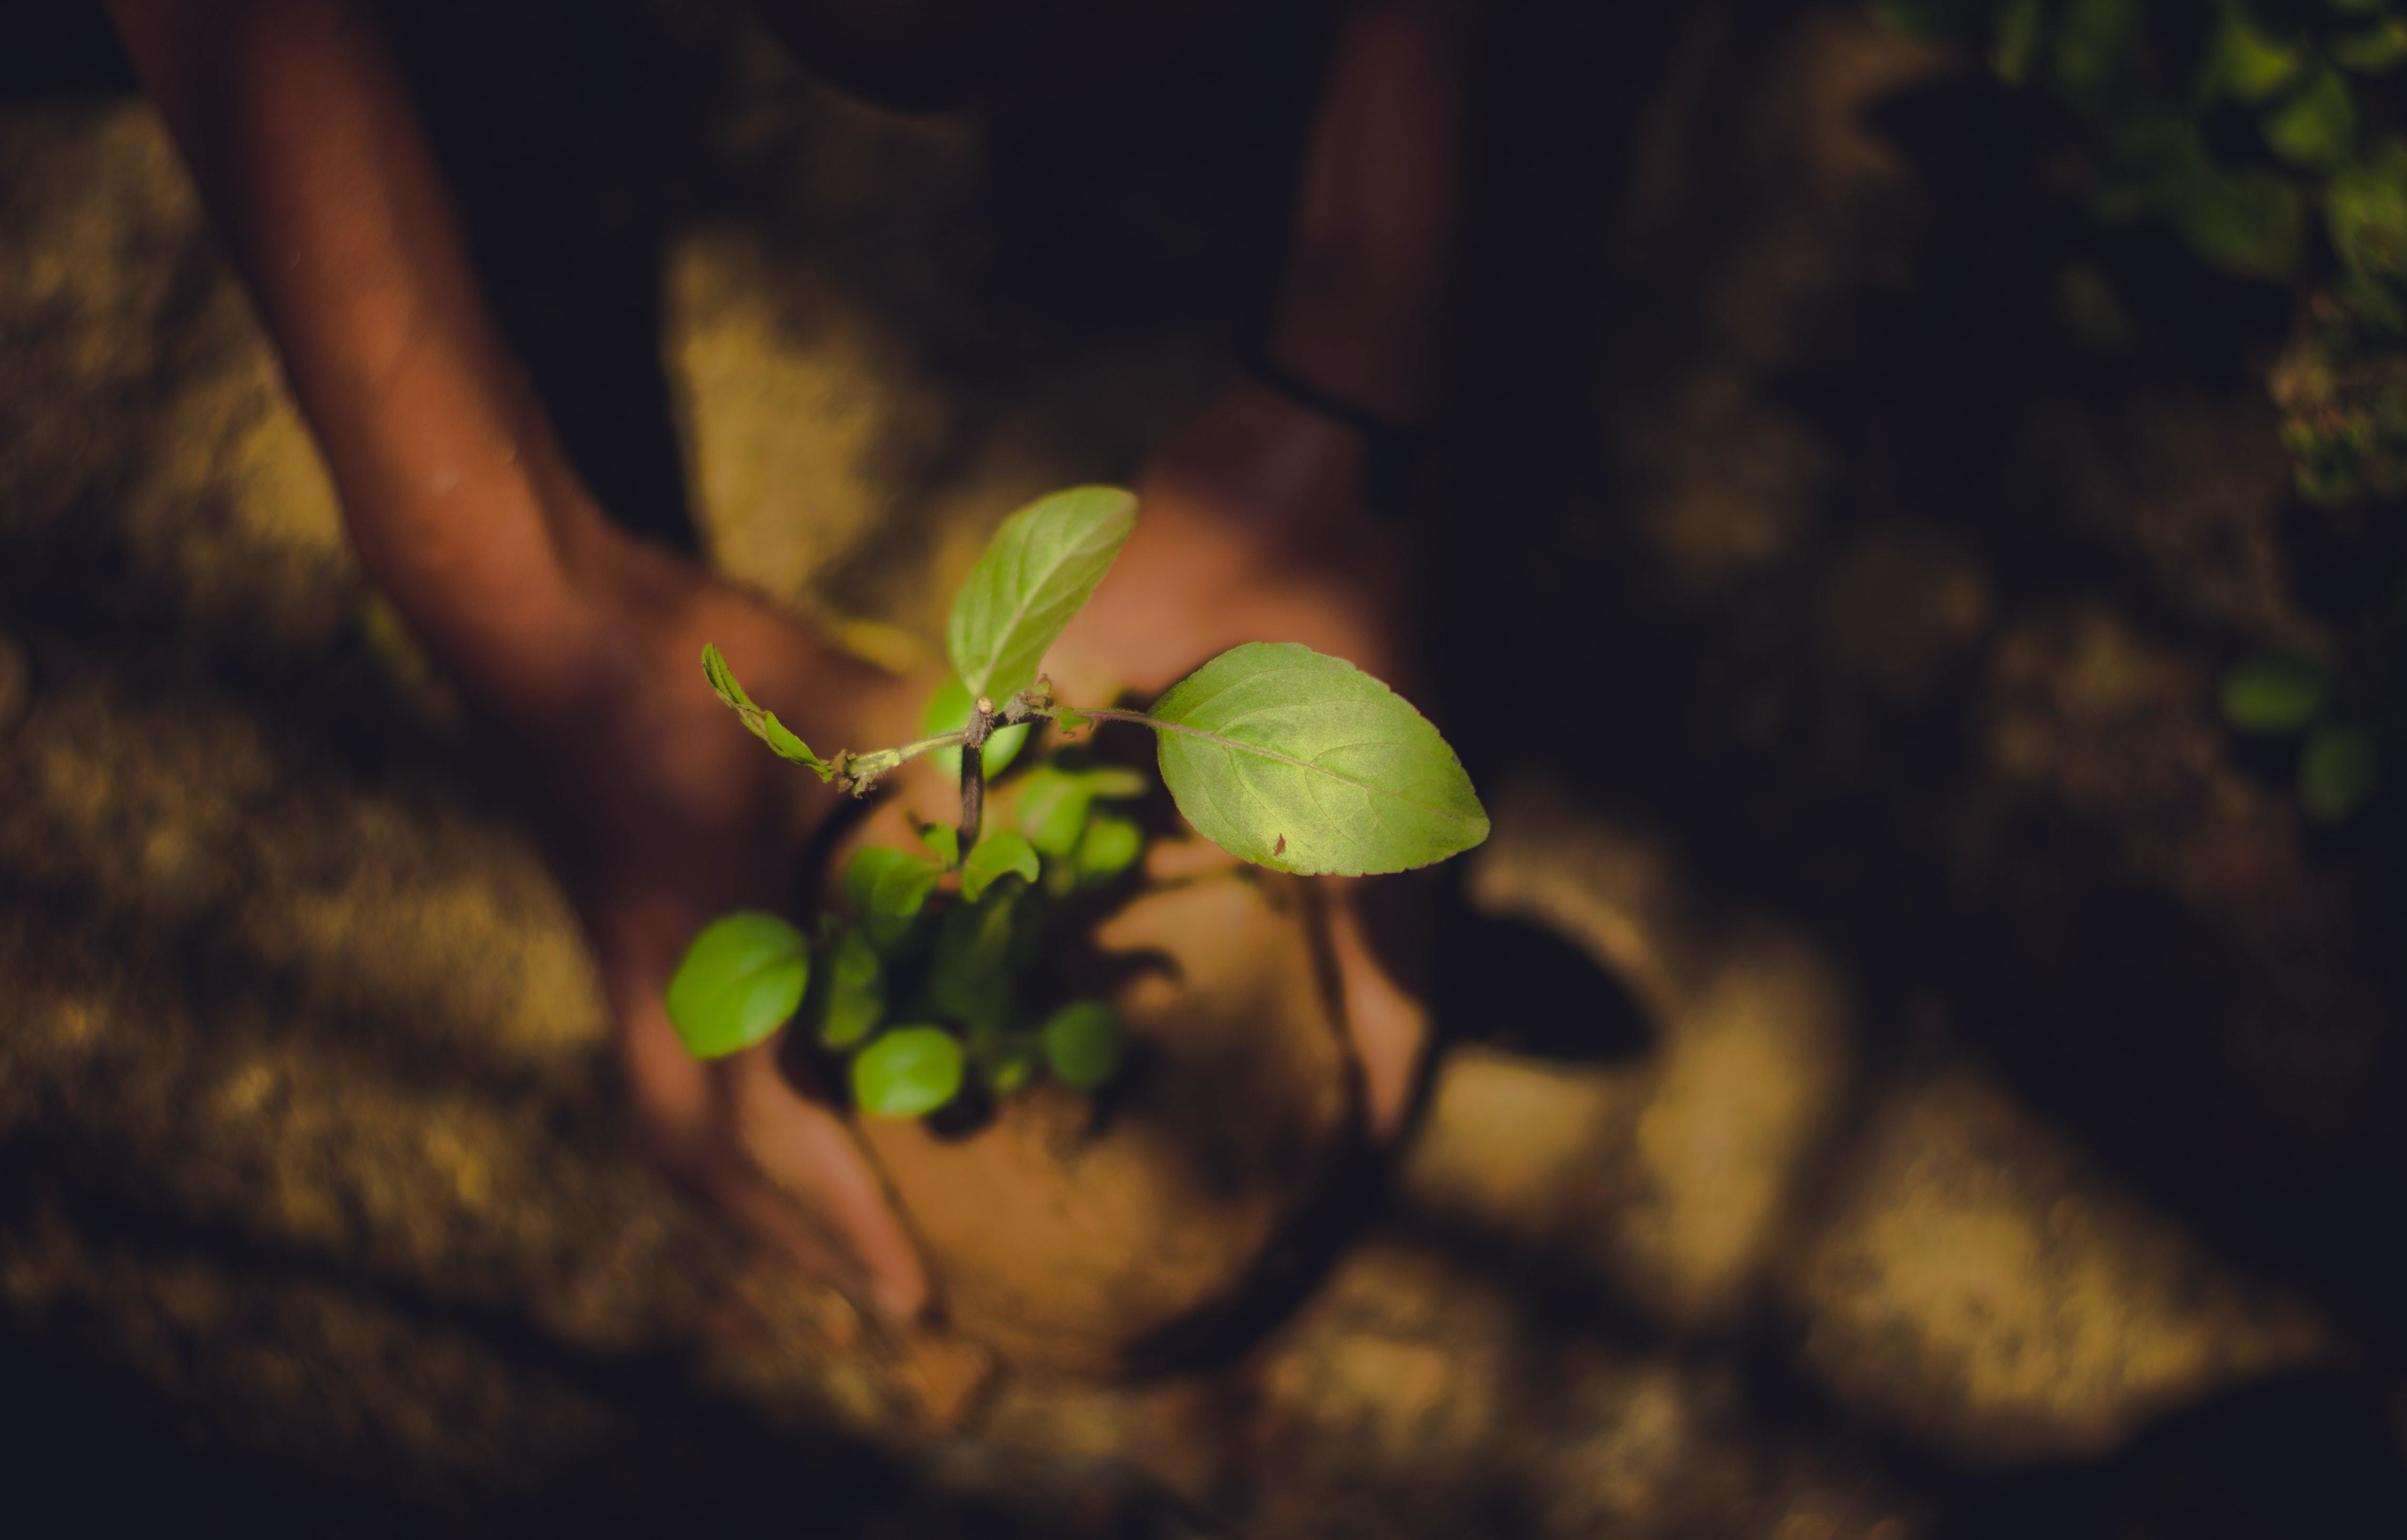 nature based solutions, like this person planting a tree, are key in solving climate change